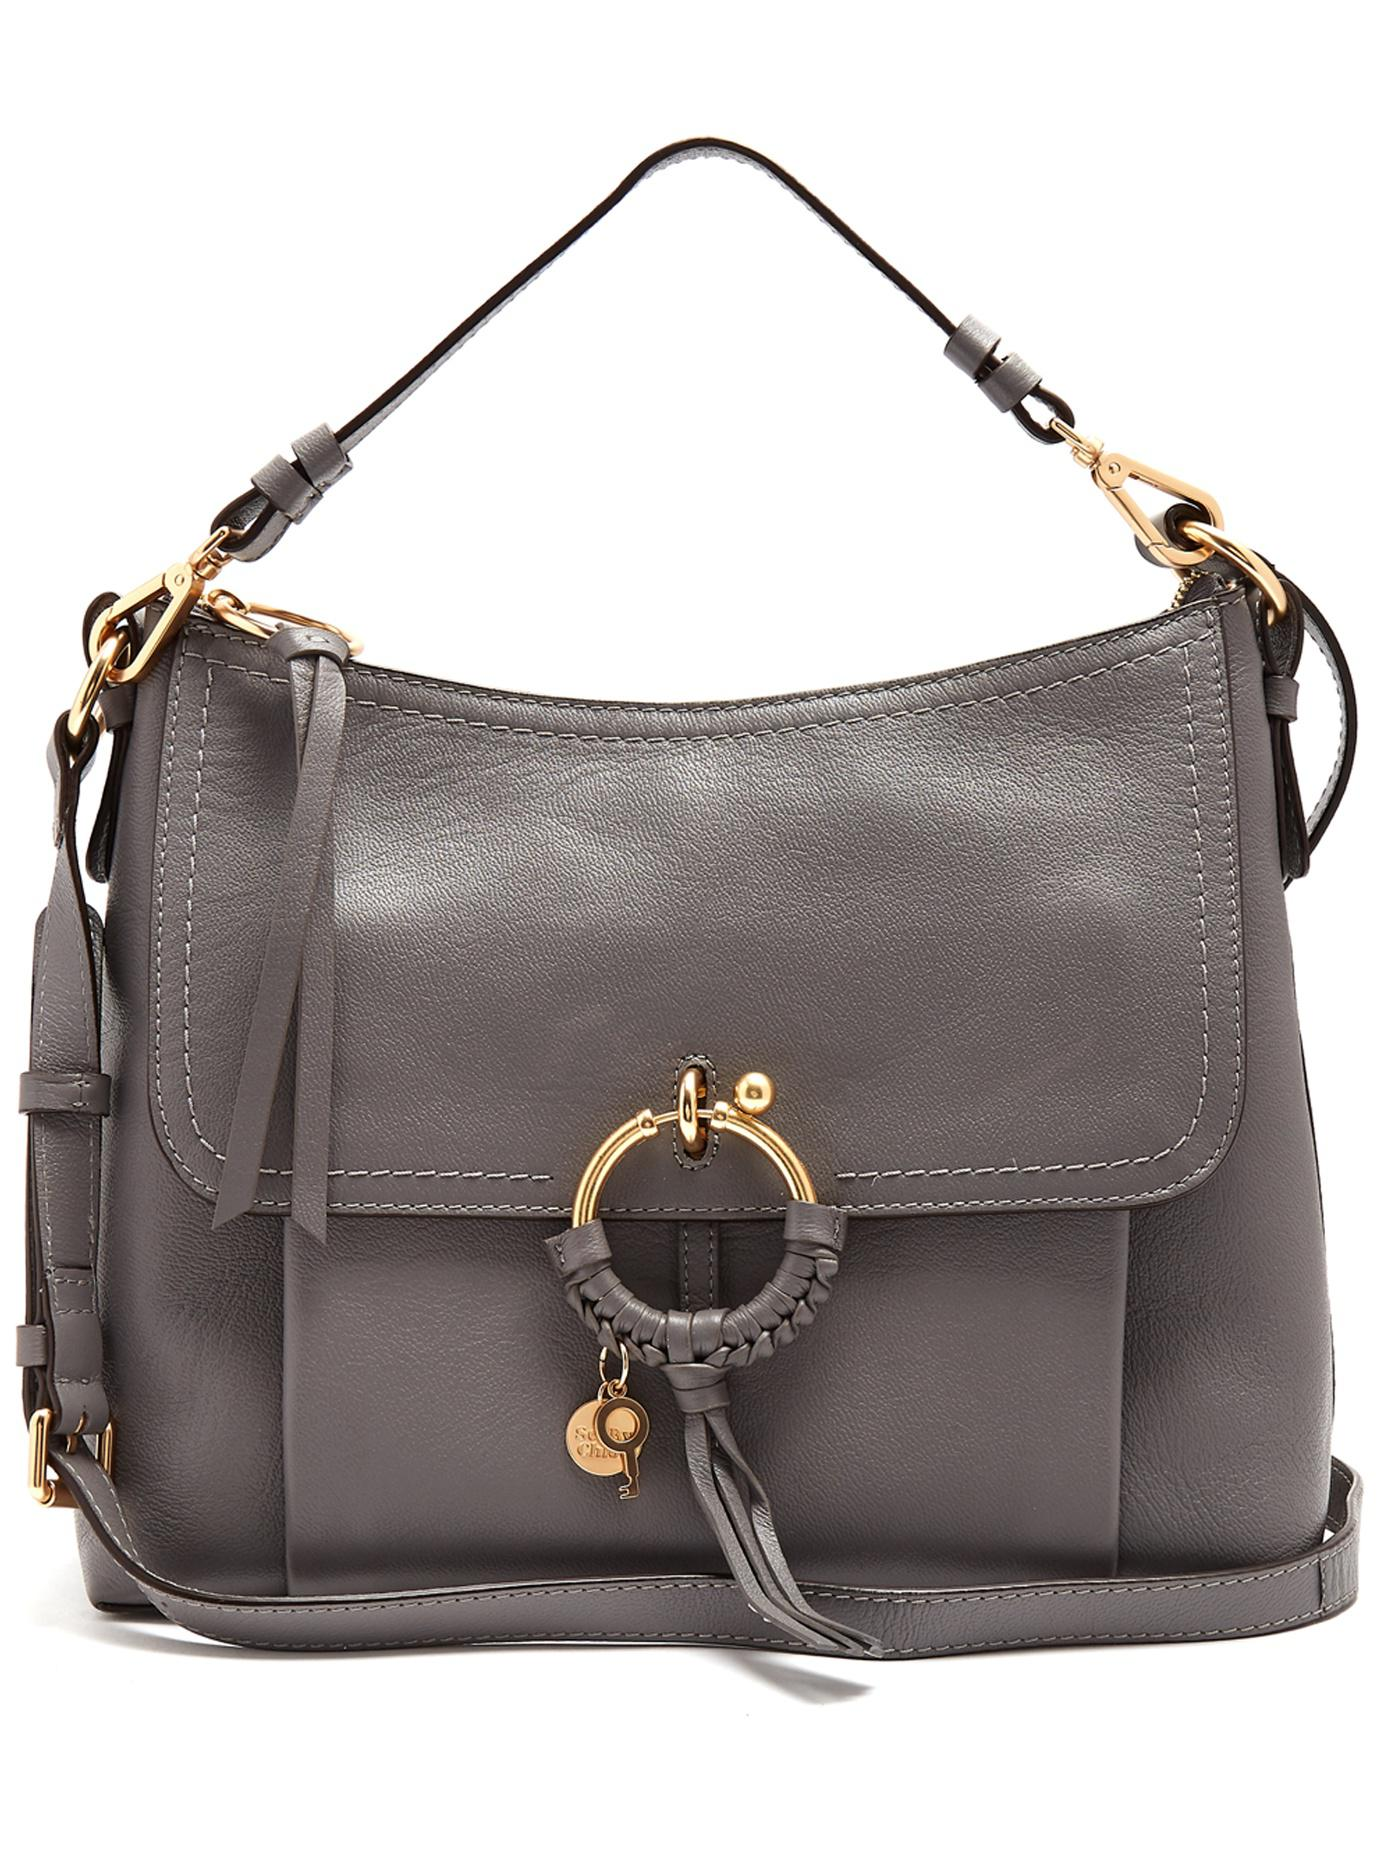 744d23bf7ad0 Lyst - See By Chloé Joan Leather Cross-body Bag in Gray